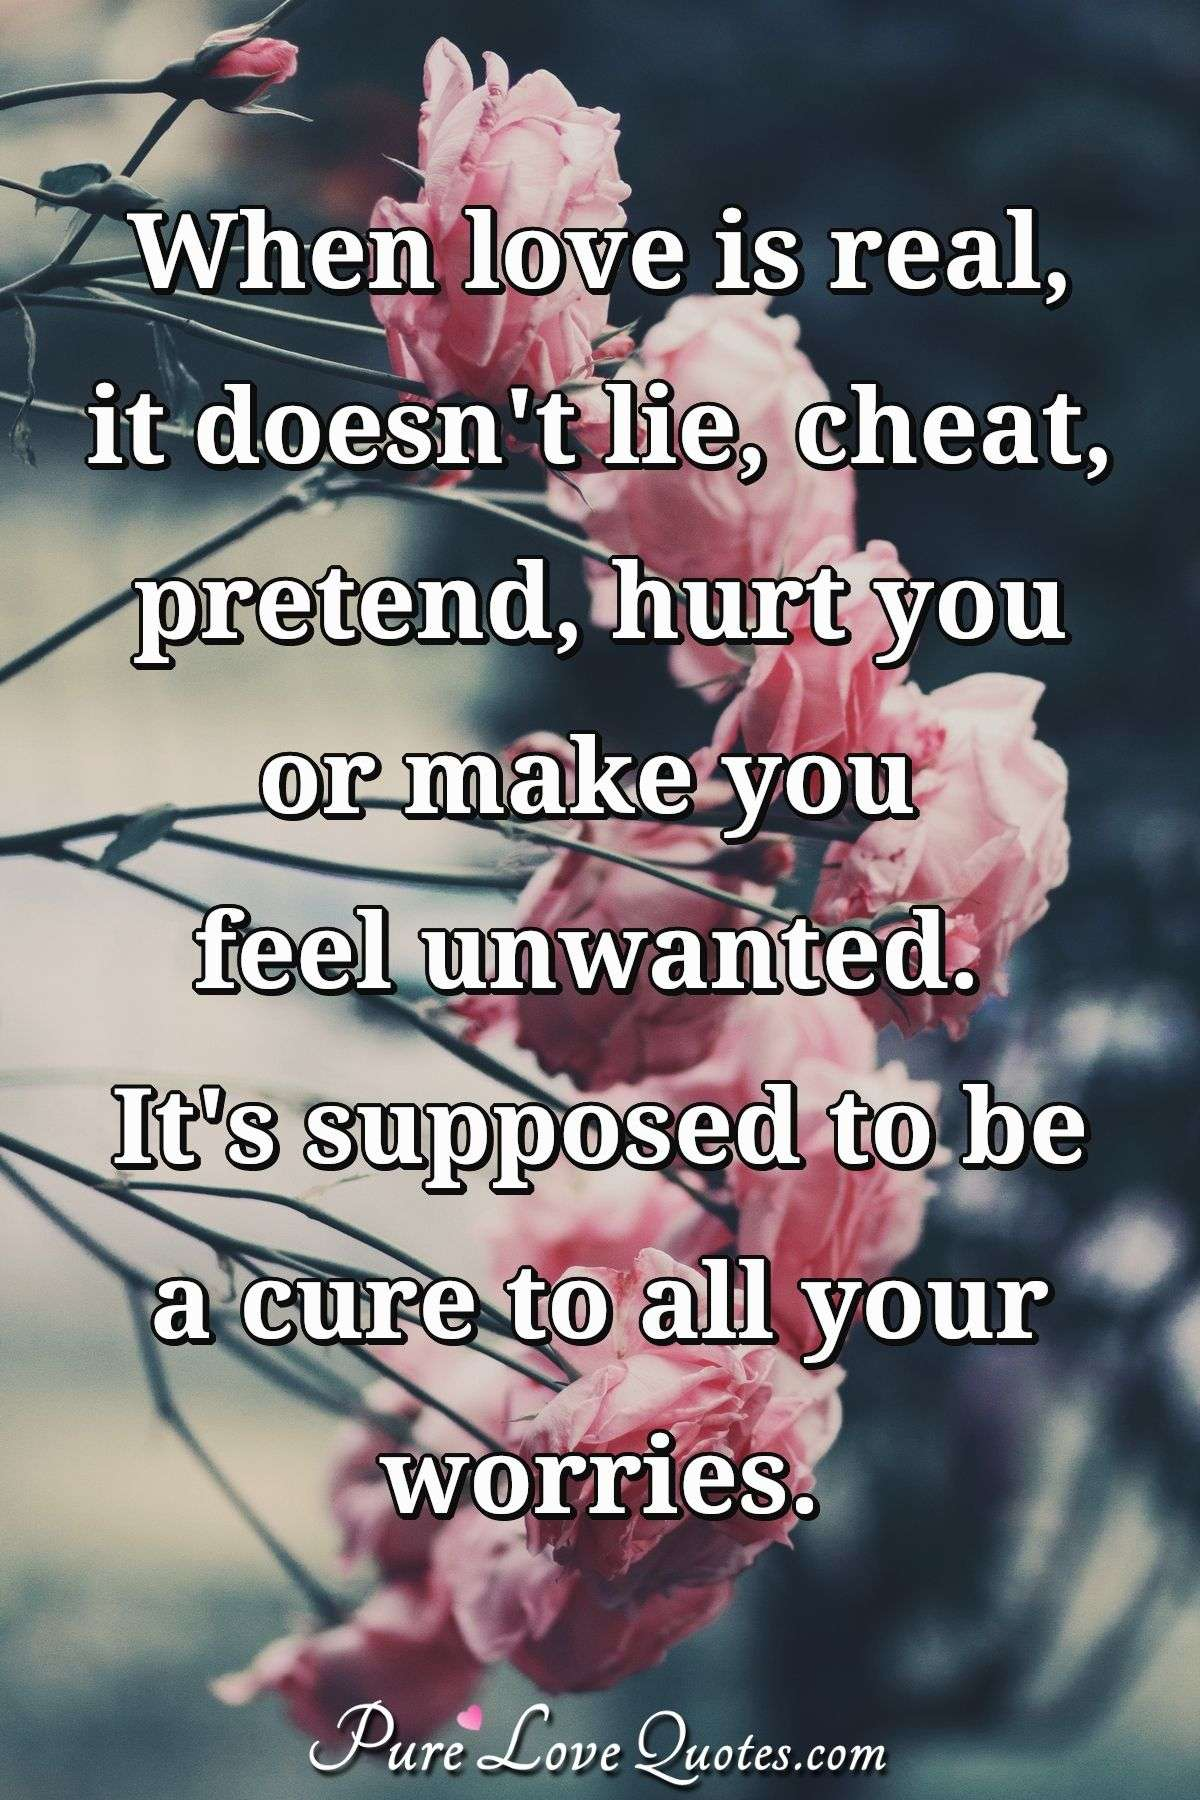 Love Doesnt Hurt Quotes : doesnt, quotes, Real,, Doesn't, Cheat,, Pretend,, Feel..., PureLoveQuotes